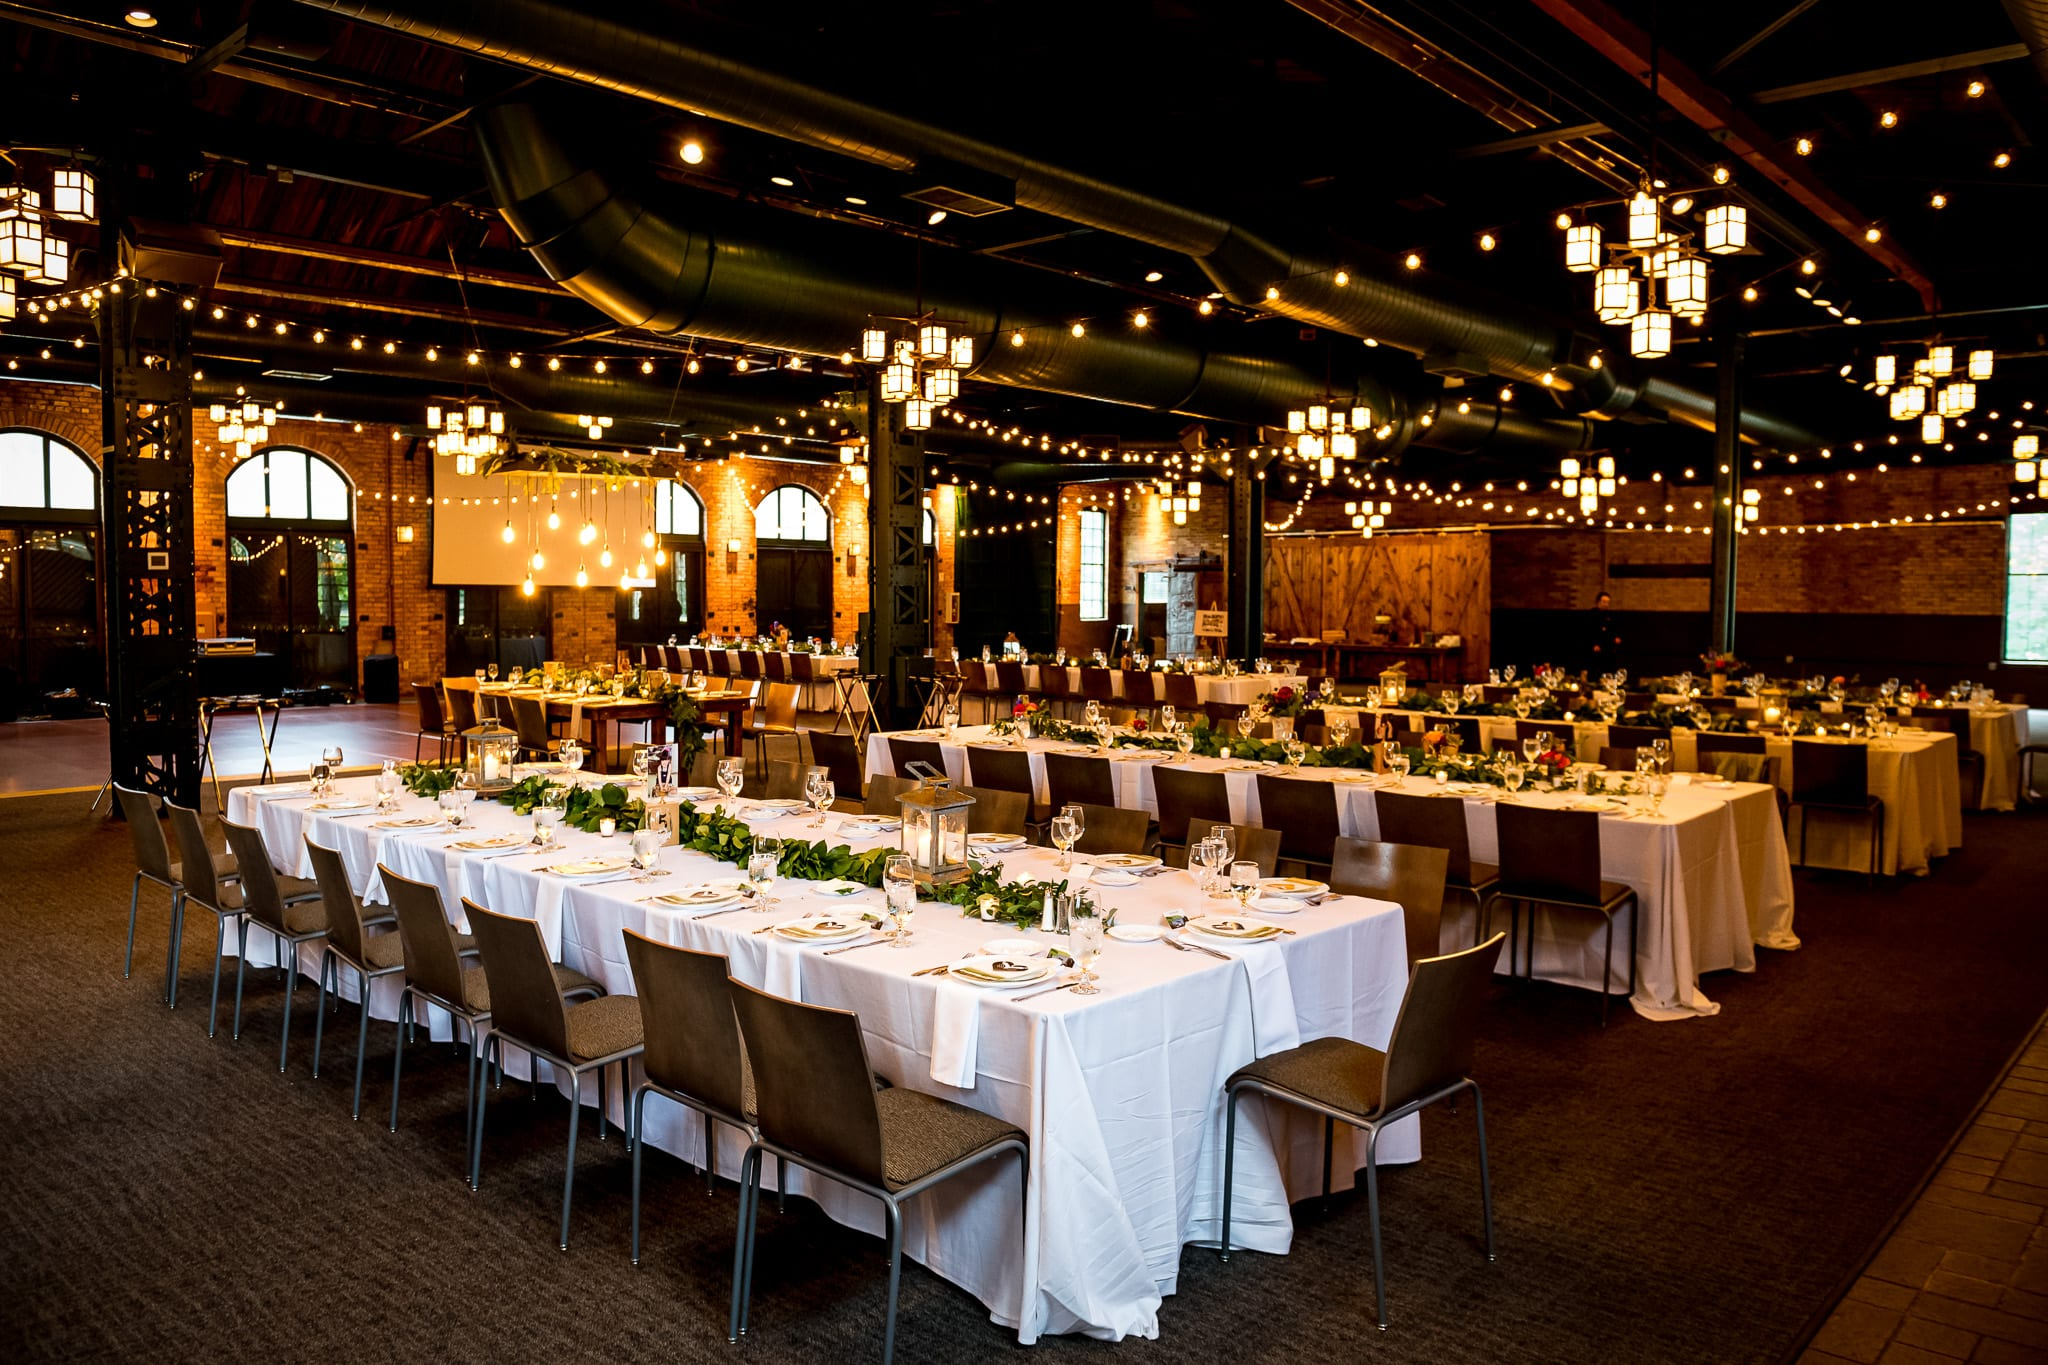 Wide shot of the Nicollet Island Pavilion all set up for a wedding reception before the guests have been seated